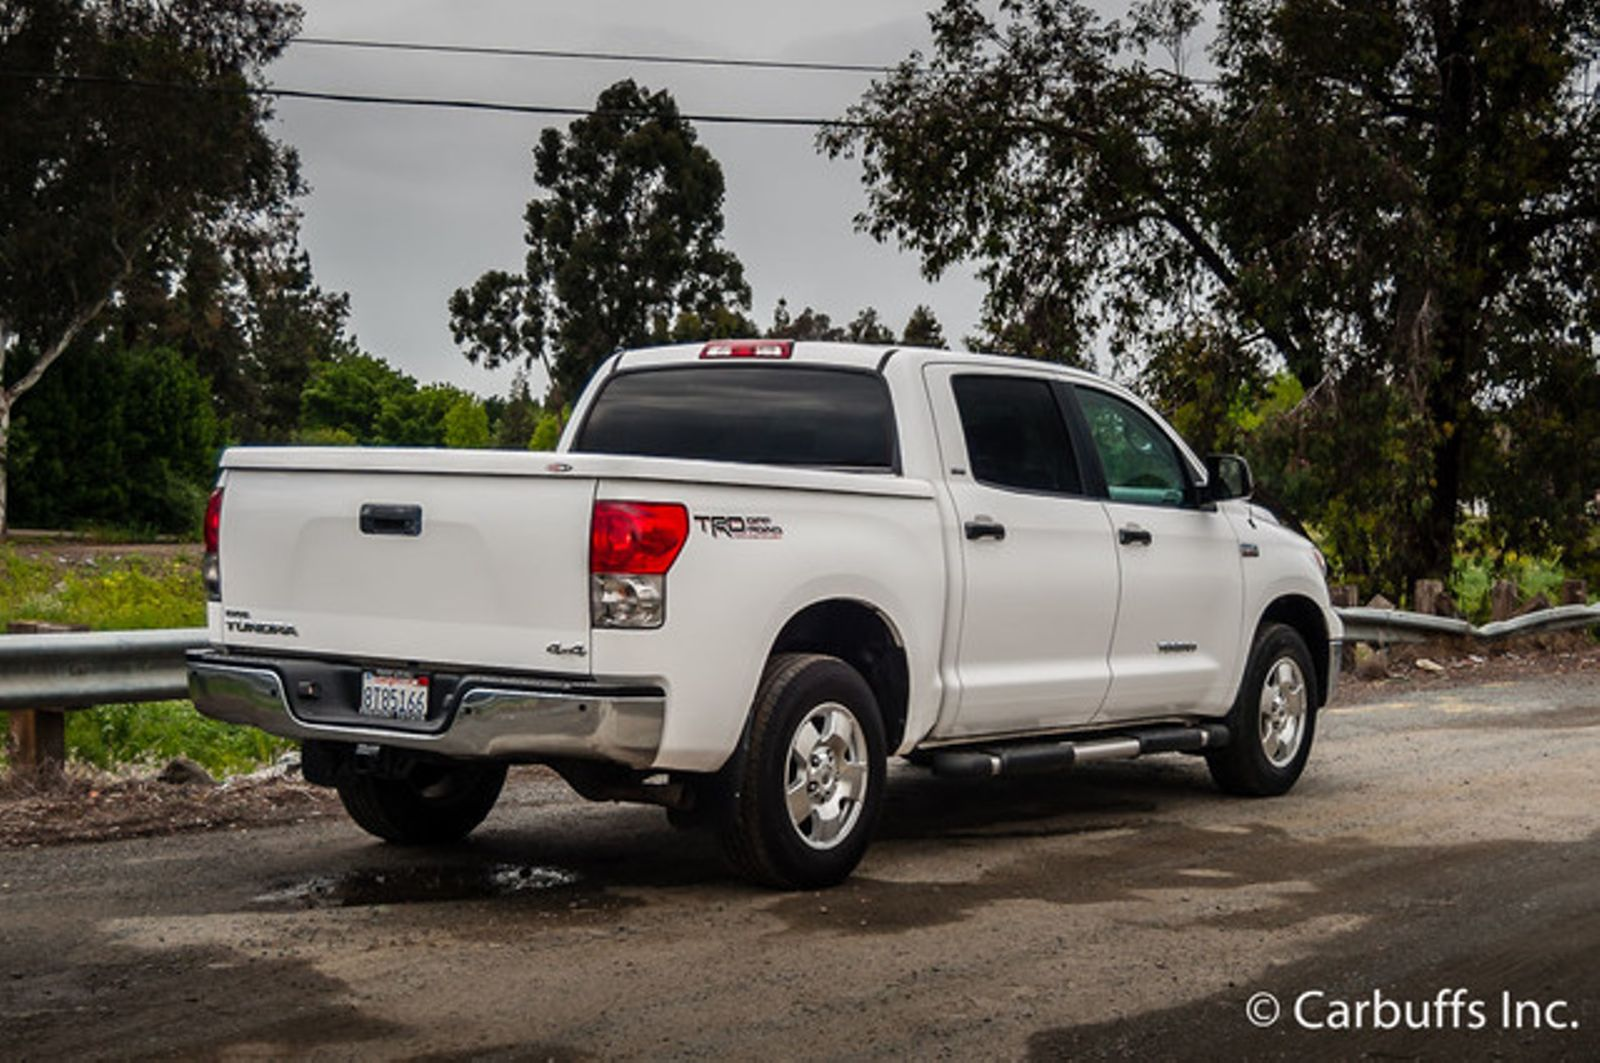 2008 toyota tundra crewmax sr5 4wd concord ca carbuffs concord ca 94520. Black Bedroom Furniture Sets. Home Design Ideas